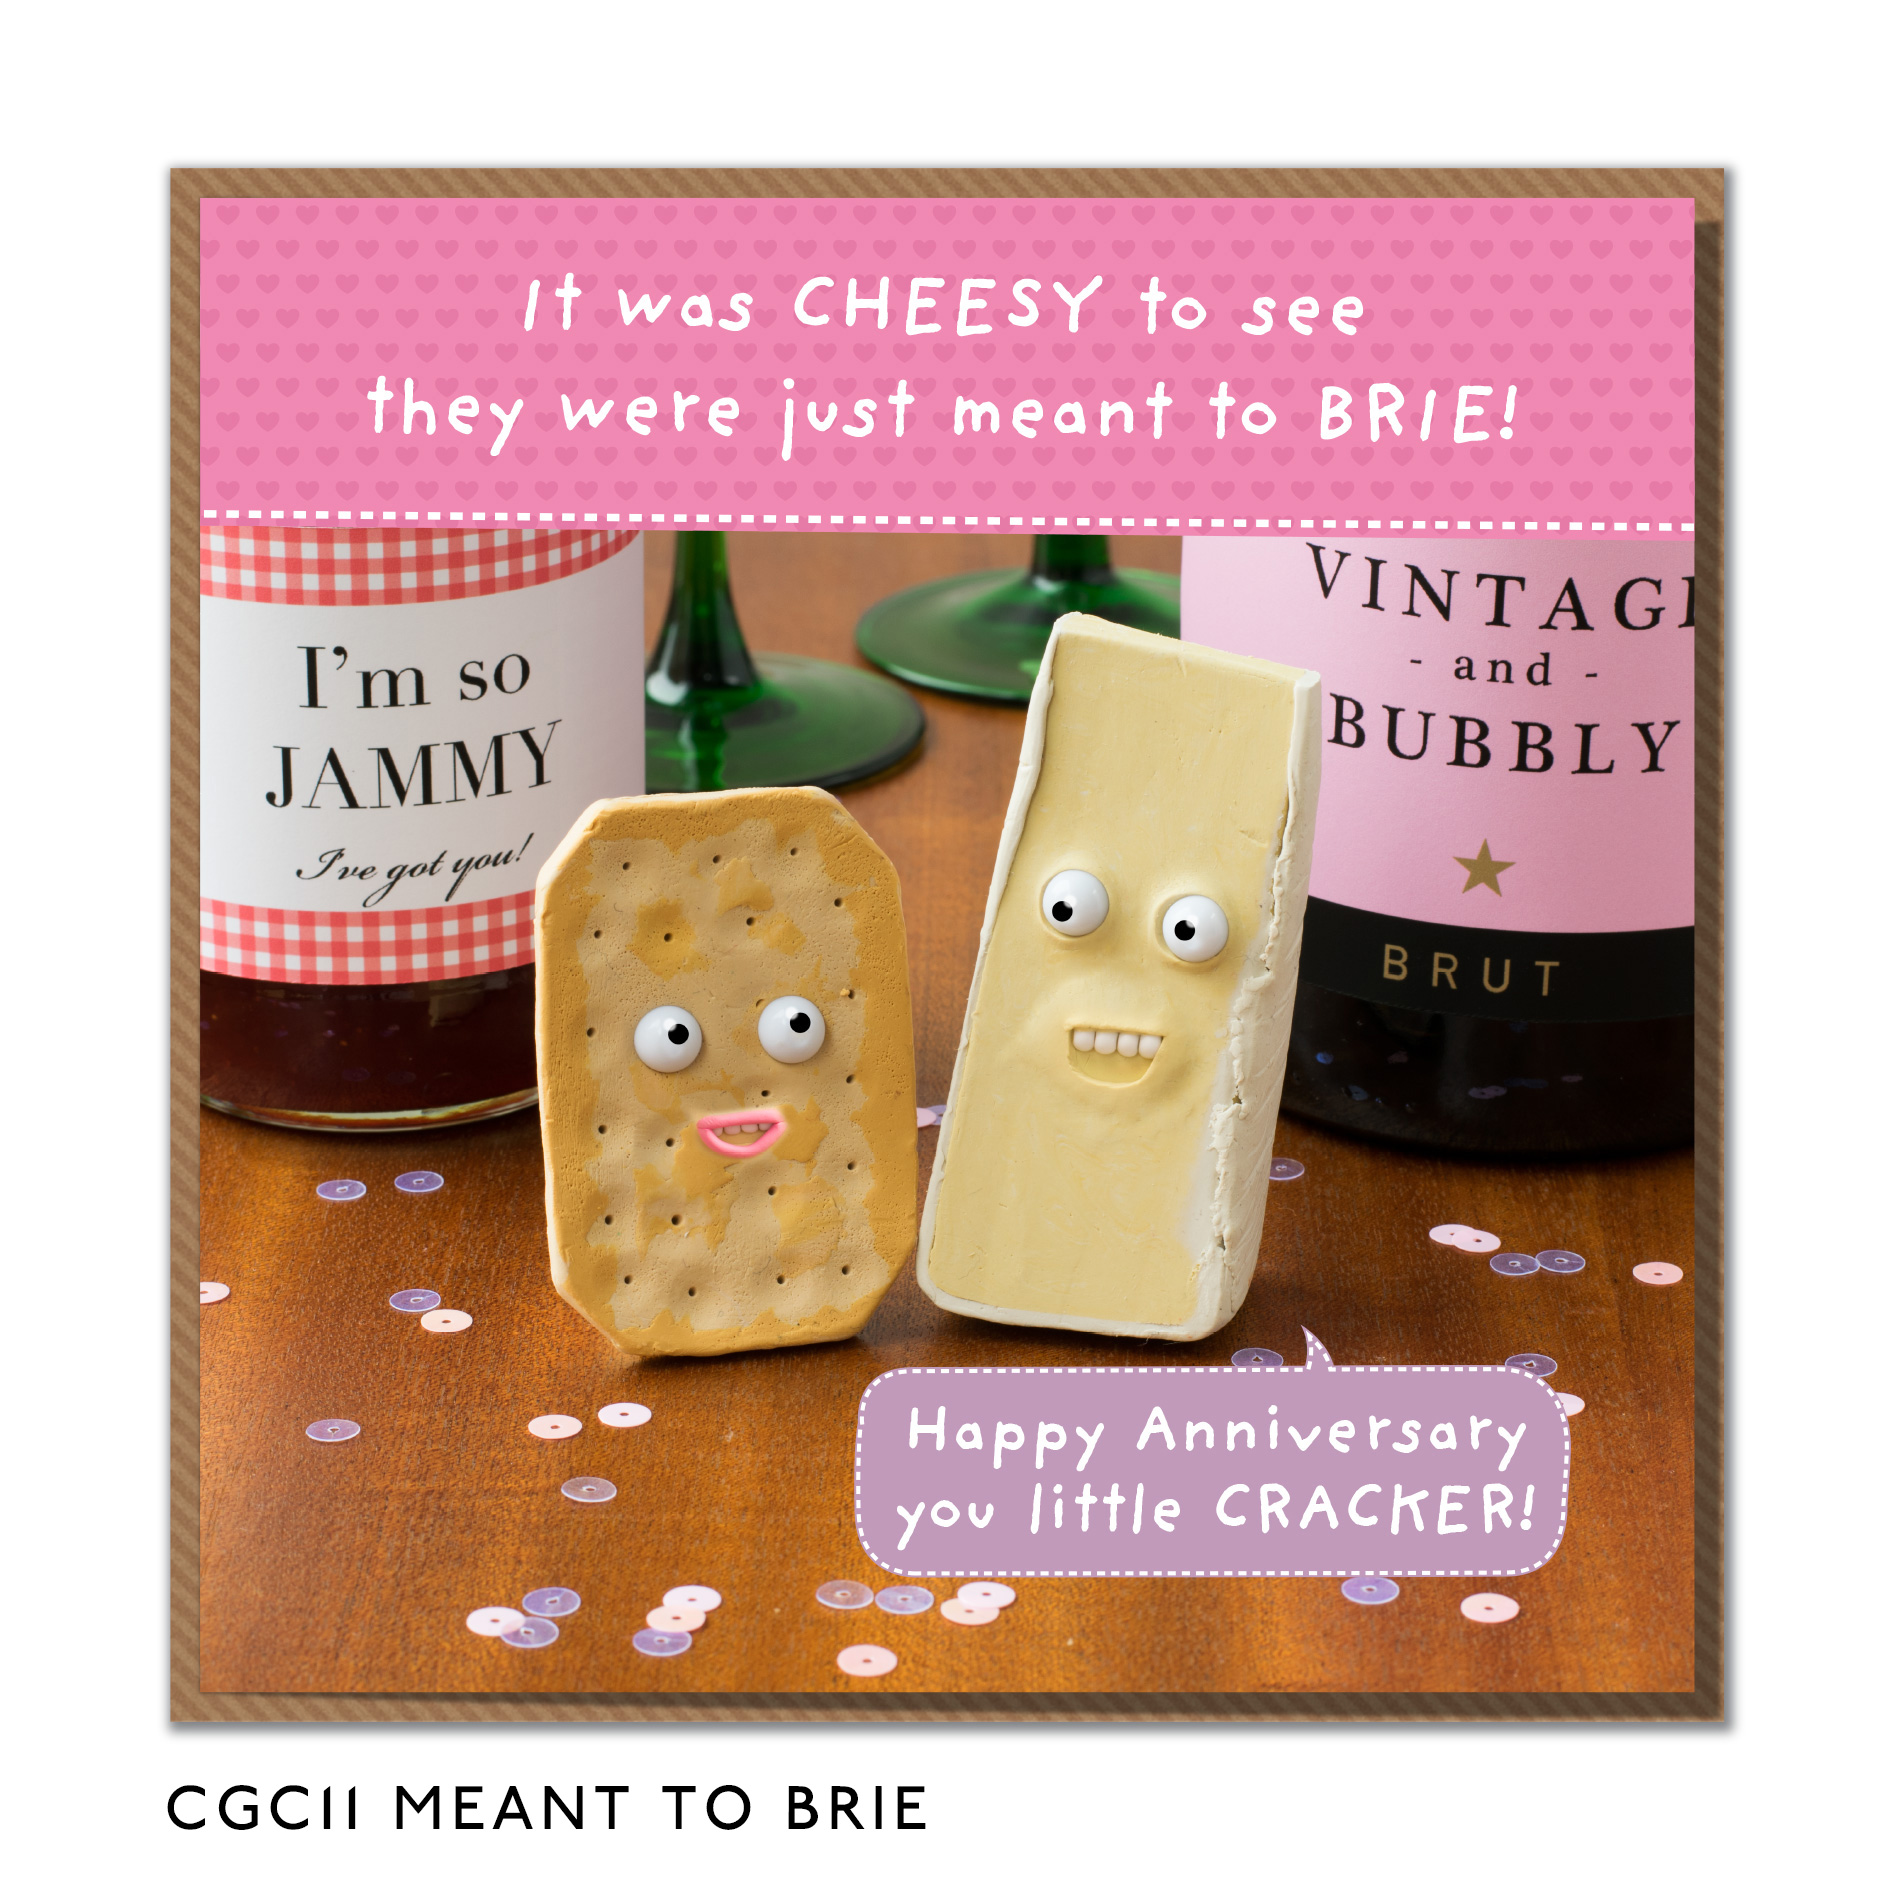 CGC11-MEANT-TO-BRIE.jpg